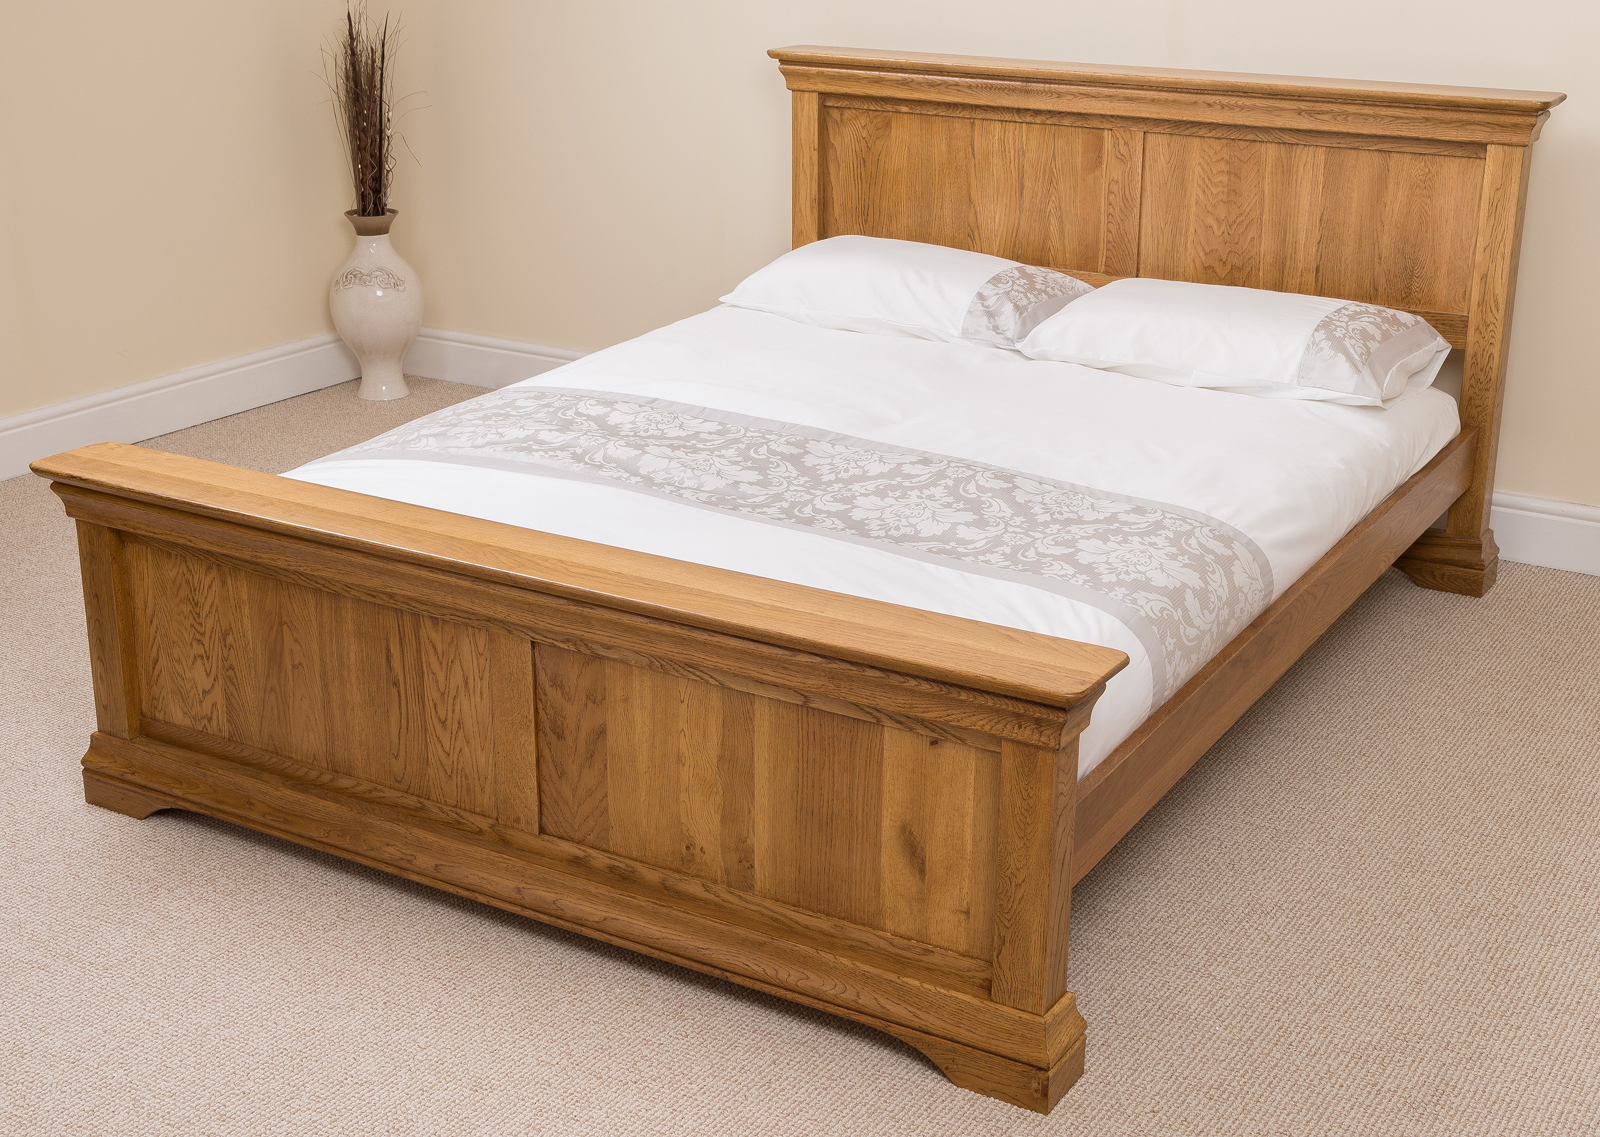 French Rustic Solid Oak Wood Super King Size Bed Frame